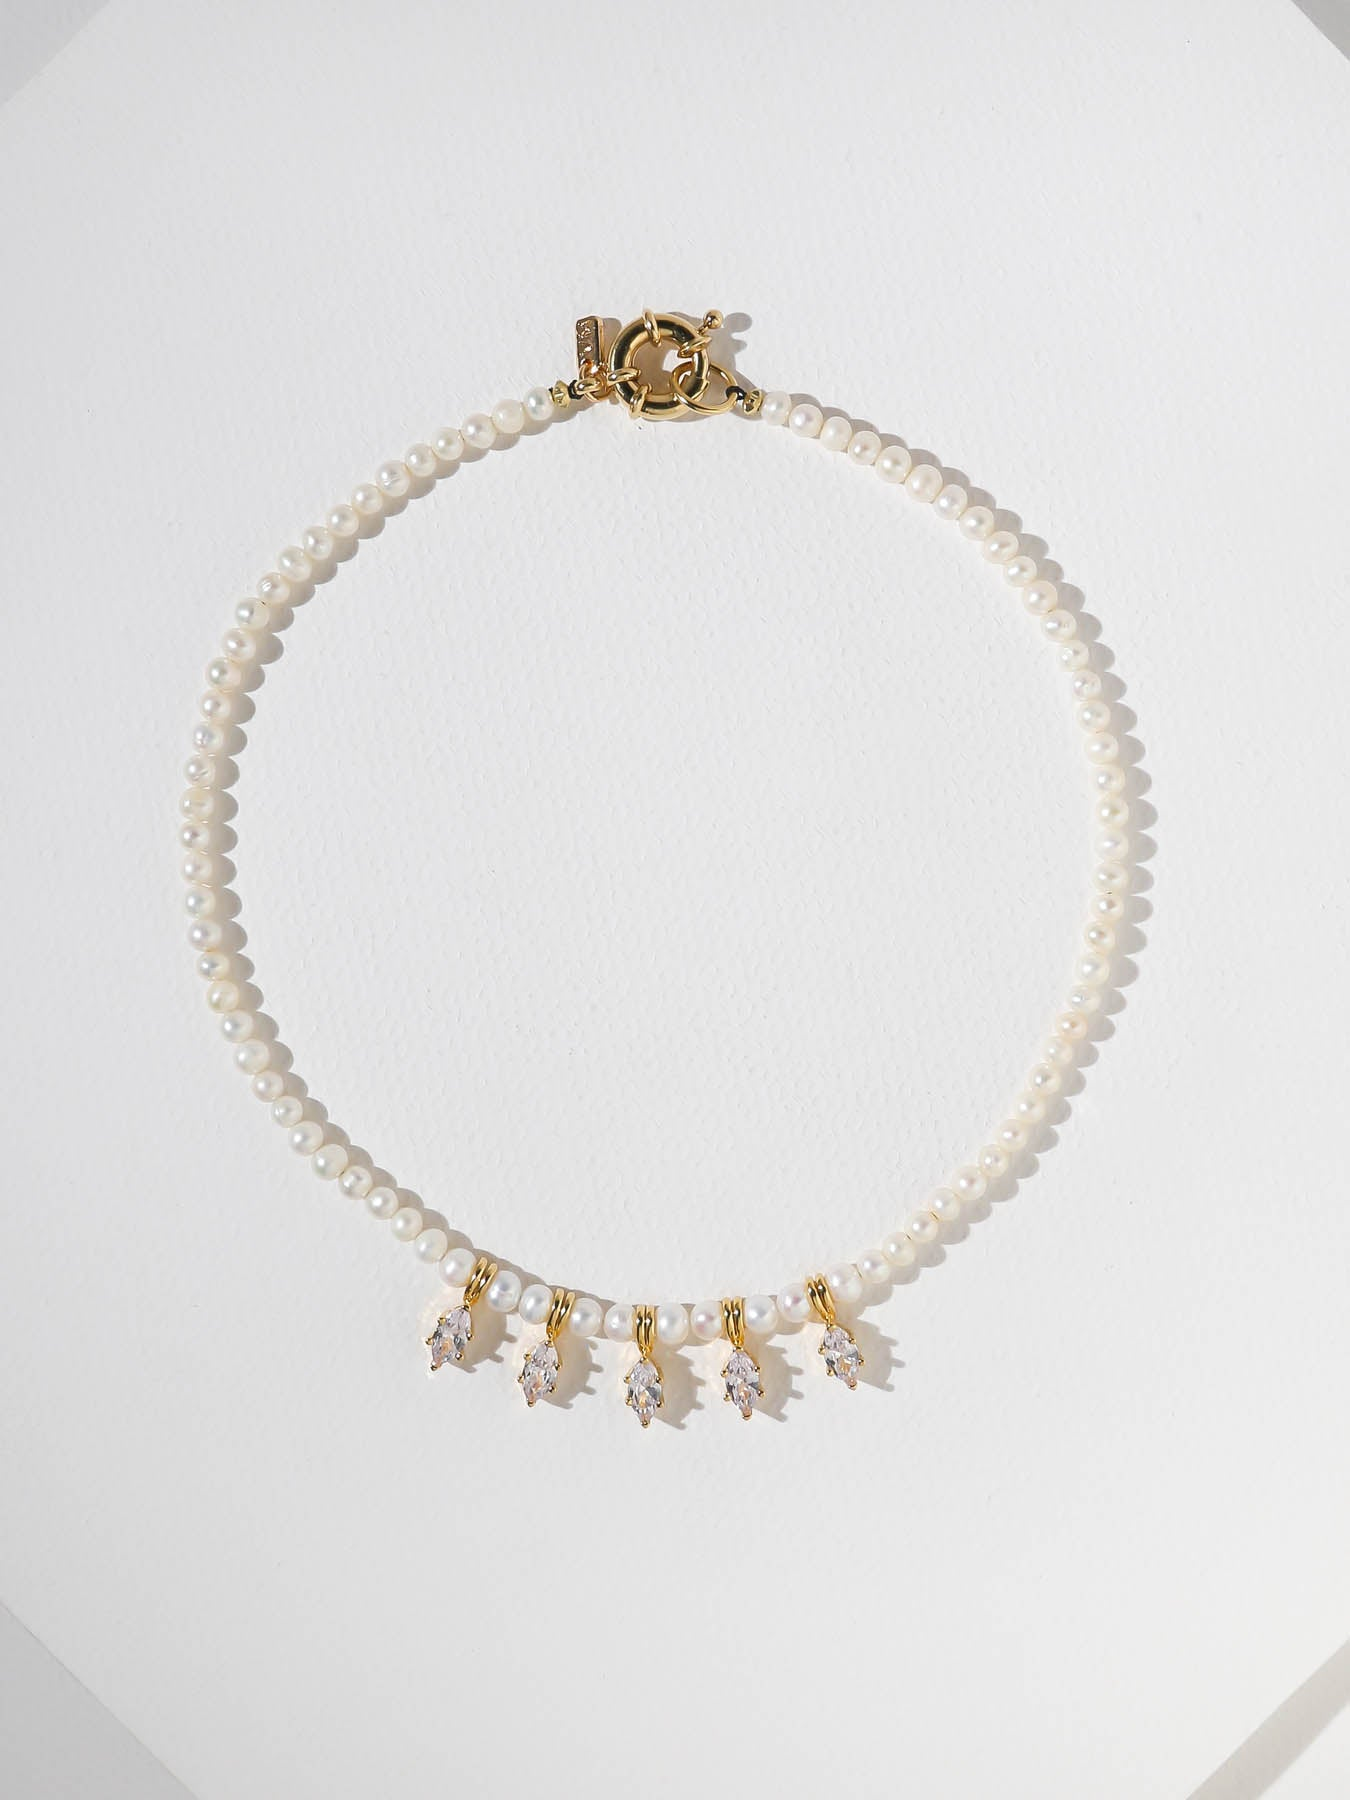 The Perla Necklace